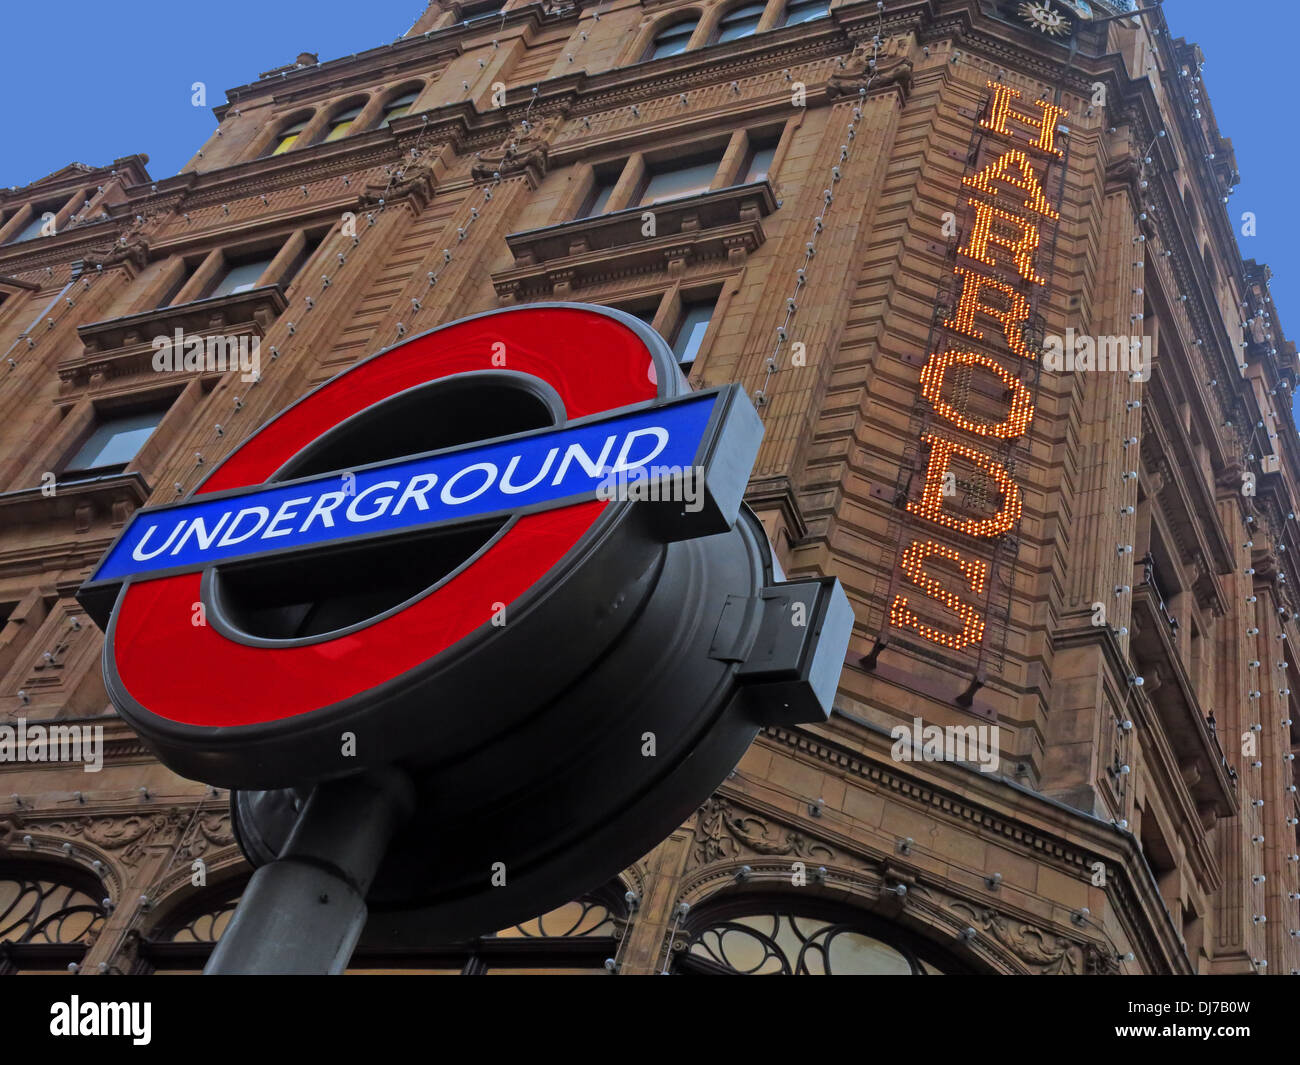 rd,street,city,red,blue,symbol,circle,GB,Great,Britain,United,Kingdom,Europe,metro,tube,line,Brompton,road,West London,England,UK,at,night,nightshot,shot,dusk,come,to,shop,shopping,retail,therapy,west,things,to,see,in,town,sign,outside,exterior,of,building,architecture,instore,in,store,gotonysmith,orange,tungsten,lights,light,bulbs,illuminated,lit,up,at,looking,up,look,lux,Buy Pictures of,Buy Images Of